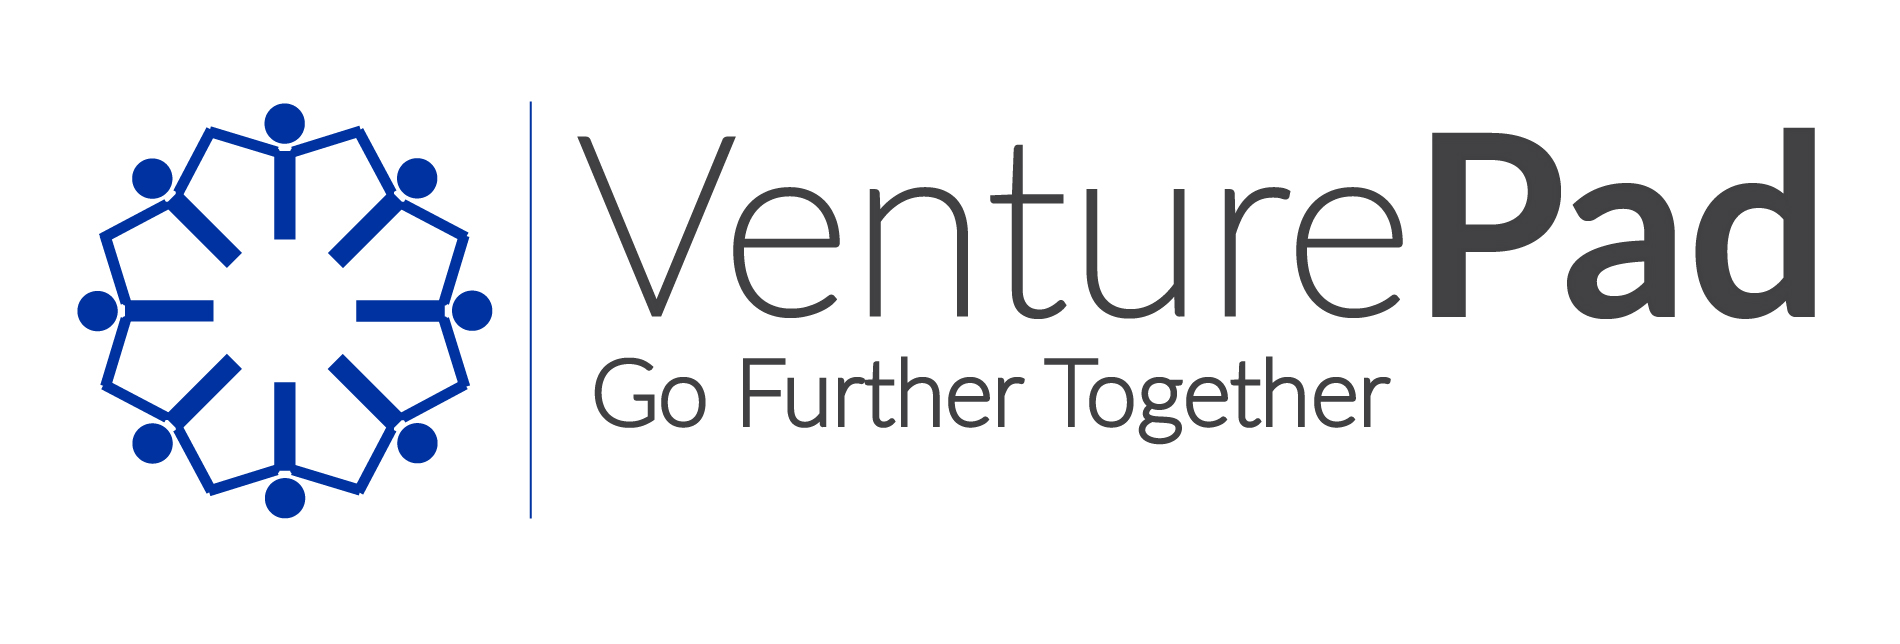 - VENTUREPADVenturePad is Marin's largest, most accessible coworking space, meeting center and business incubator in a professional space. We offer local entrepreneurs and large employers shared office space, private offices, meeting rooms and event space. VenturePad is committed to building a supportive and sustainable community with a positive social impact.